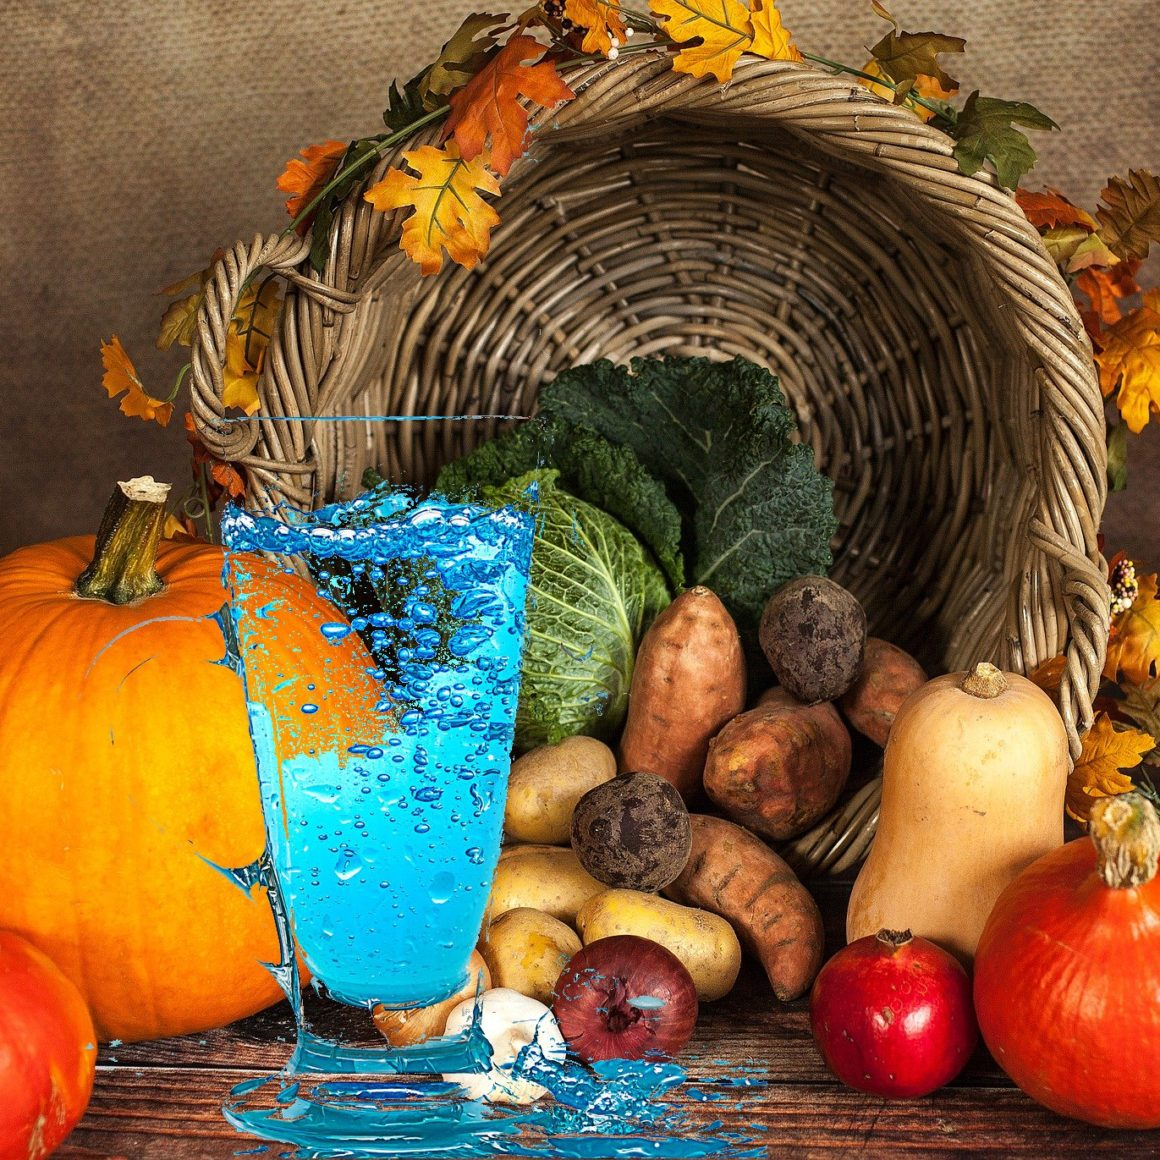 Image of Thanksgiving Table with water jug